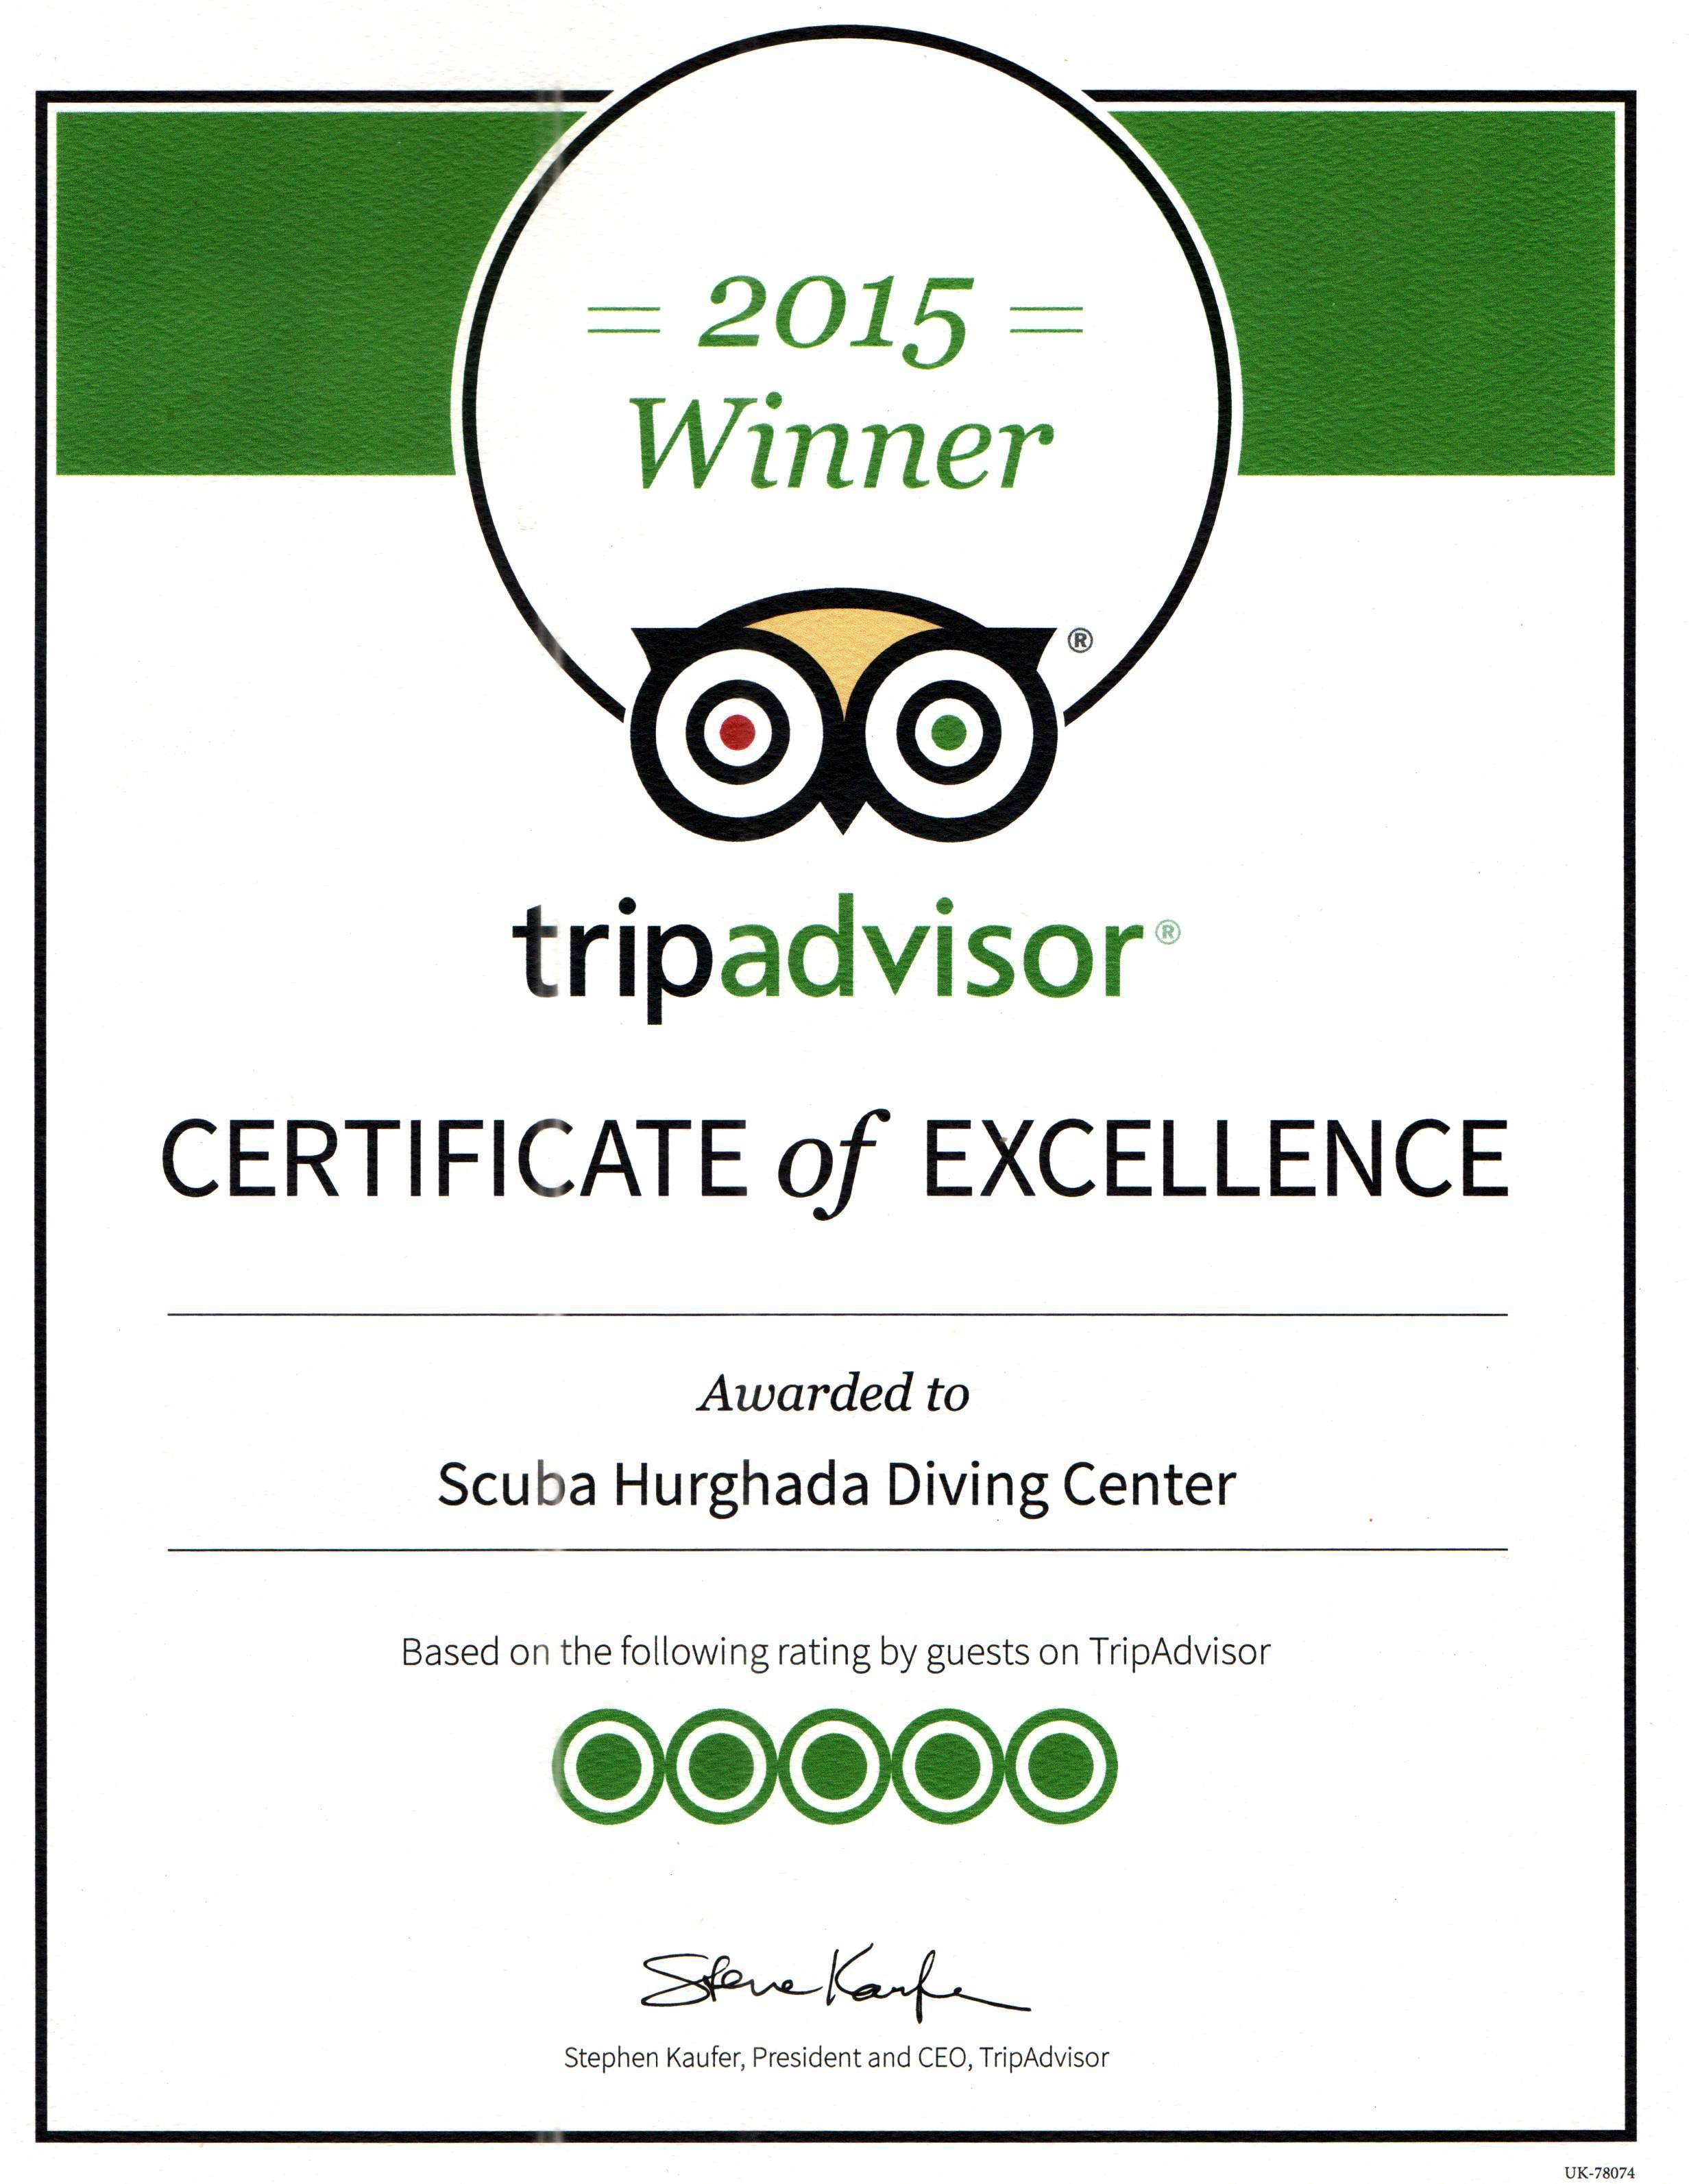 Scuba-Hurghada-Diving-Center-Bijou-TripAdvisor-Excellence-Award-Snorkeling-RedSea-Egypt